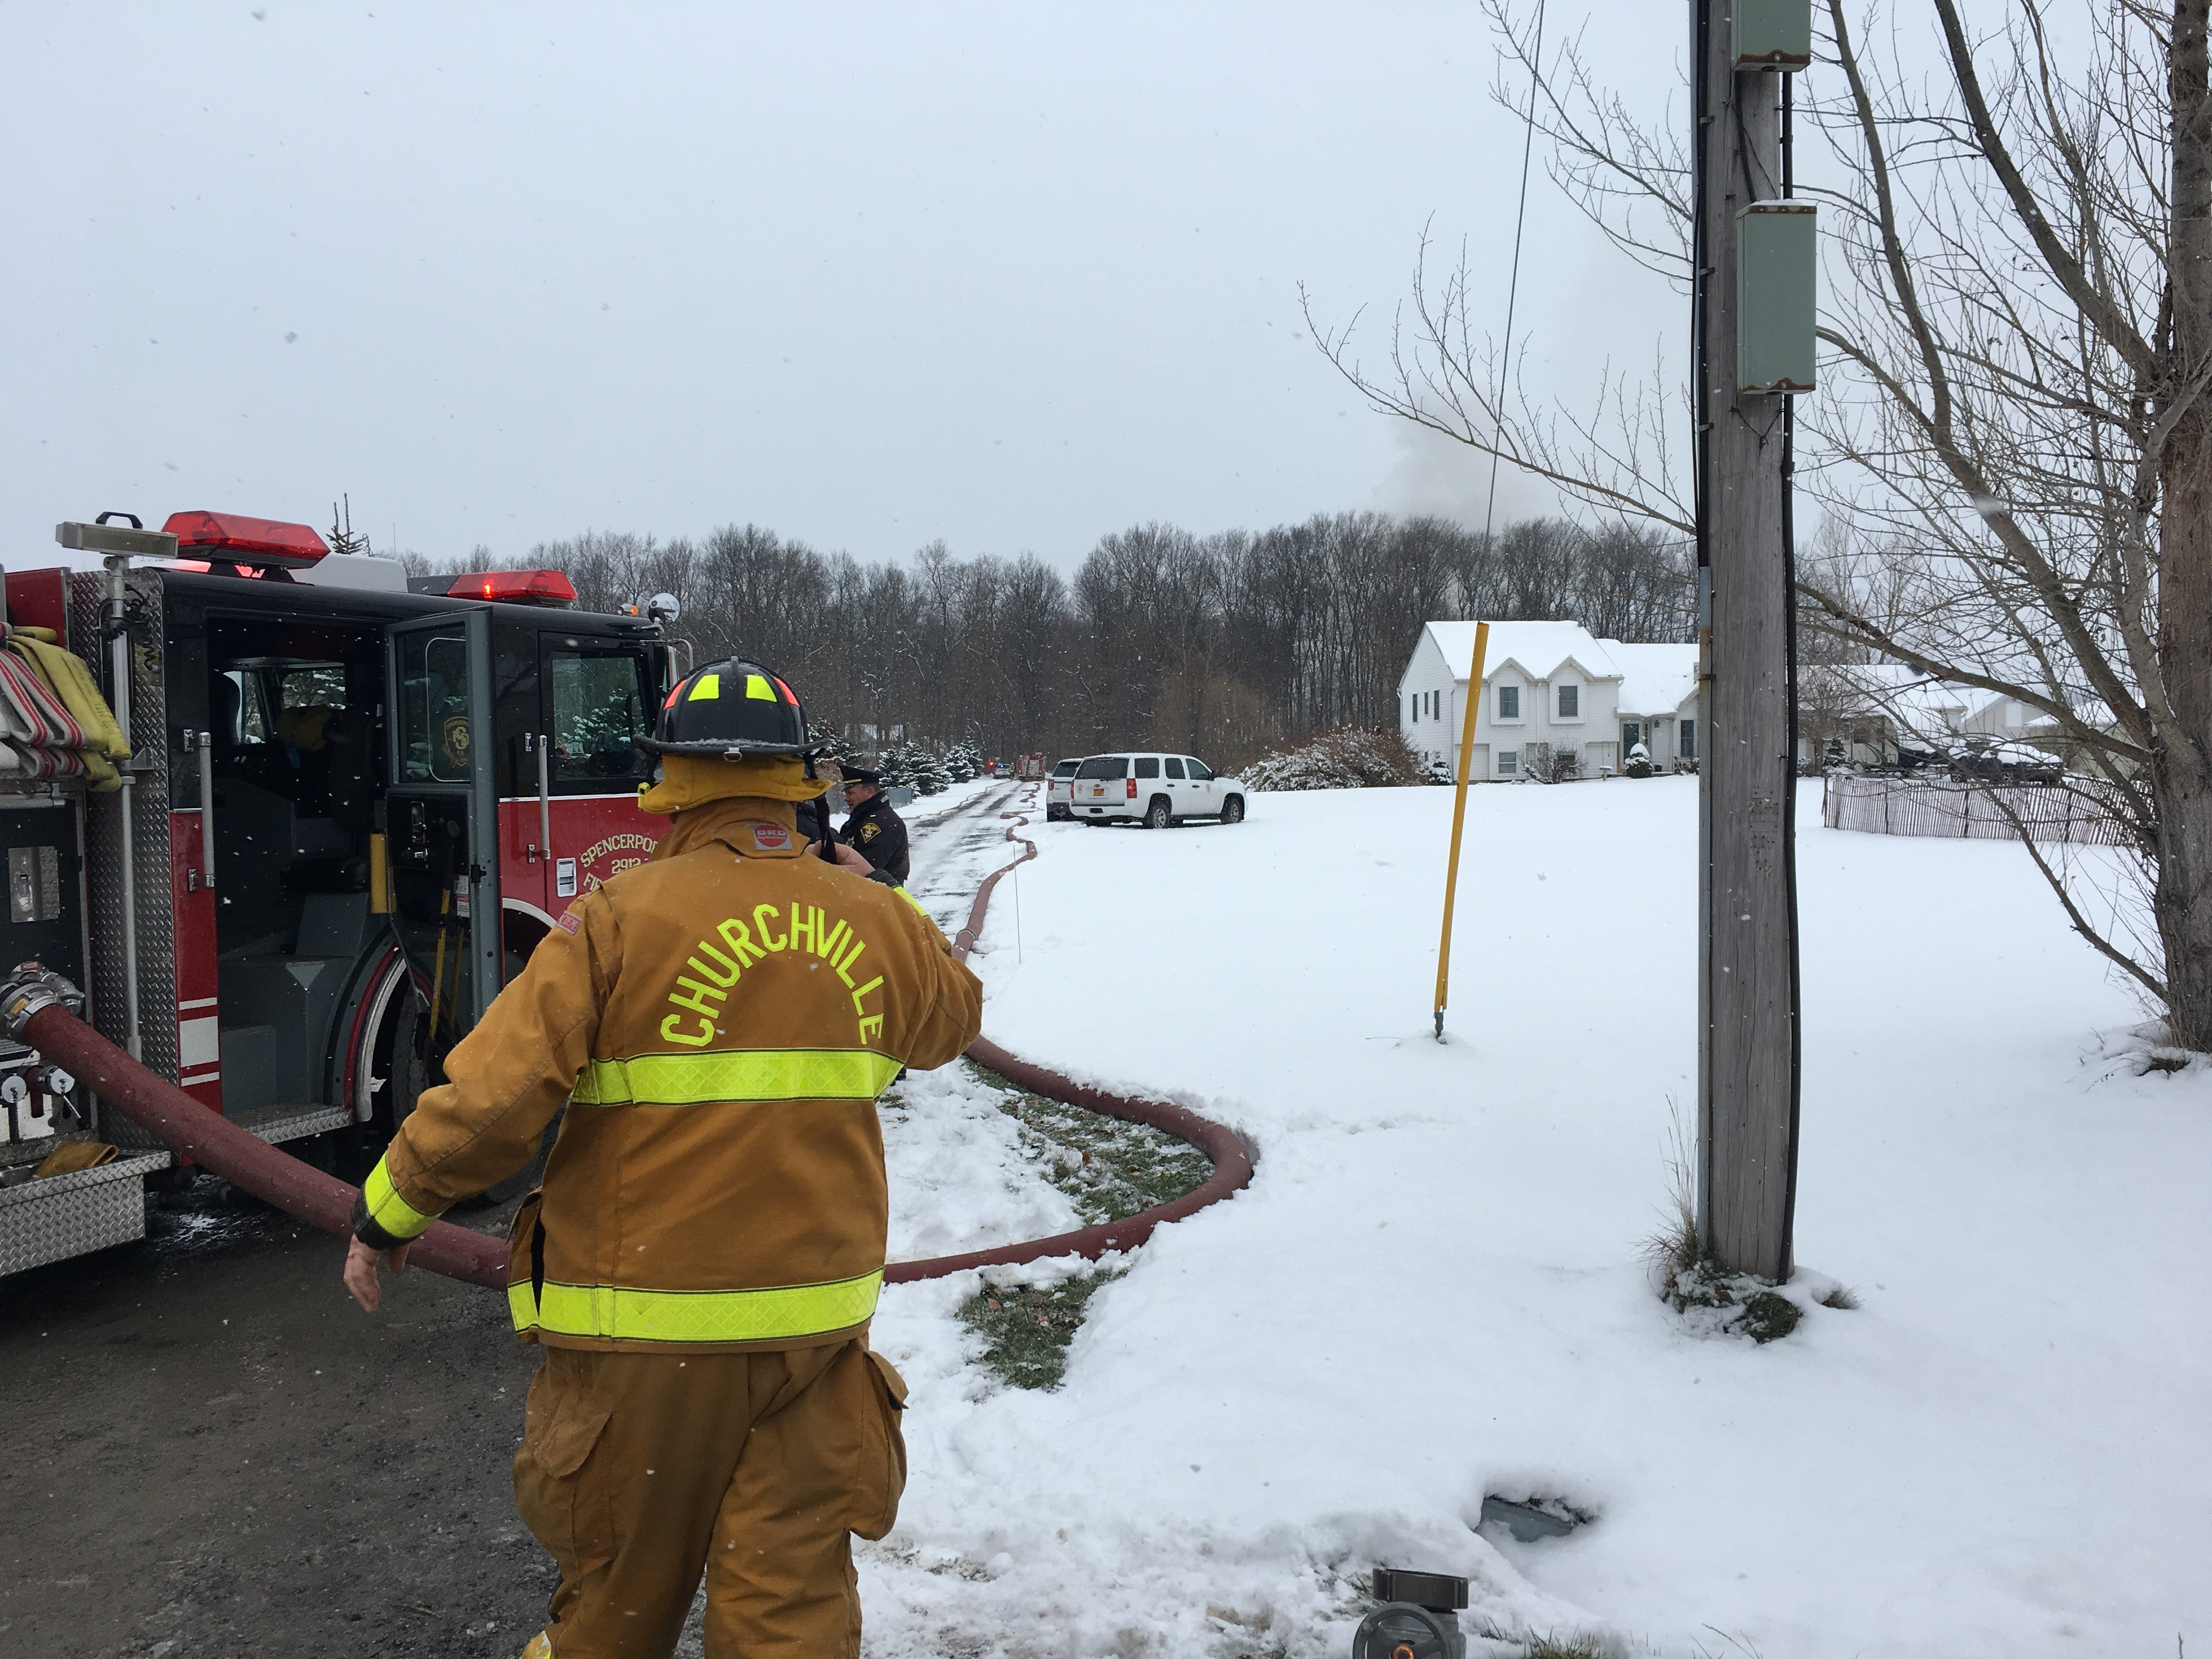 Fire crews were called to a fire at a building set far back off of a road in Riga Monday afternoon. (WHAM photo)